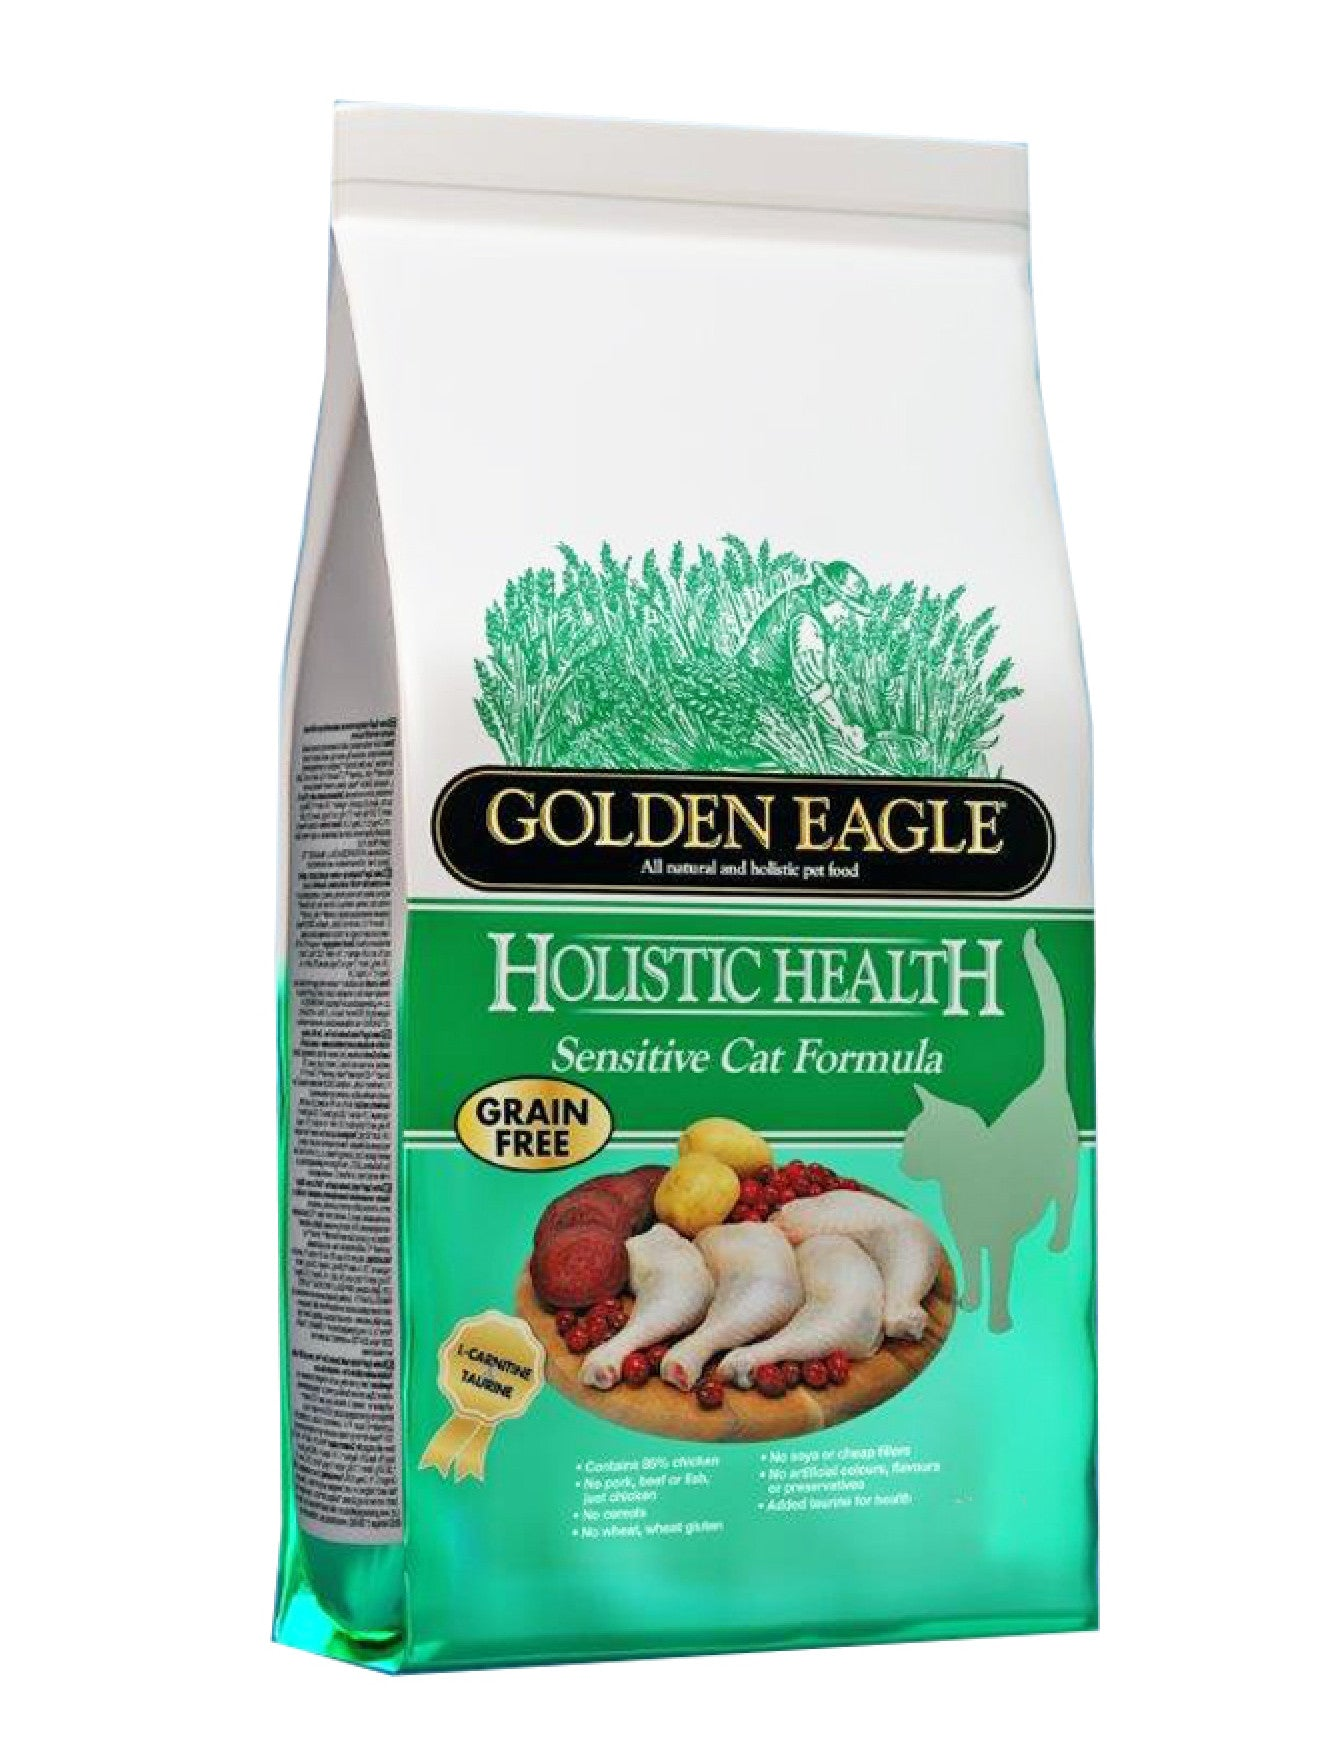 Golden Eagle Holistic Sensitive Grain Free Cat Dry Food 2kg | Perromart Online Pet Store Singapore